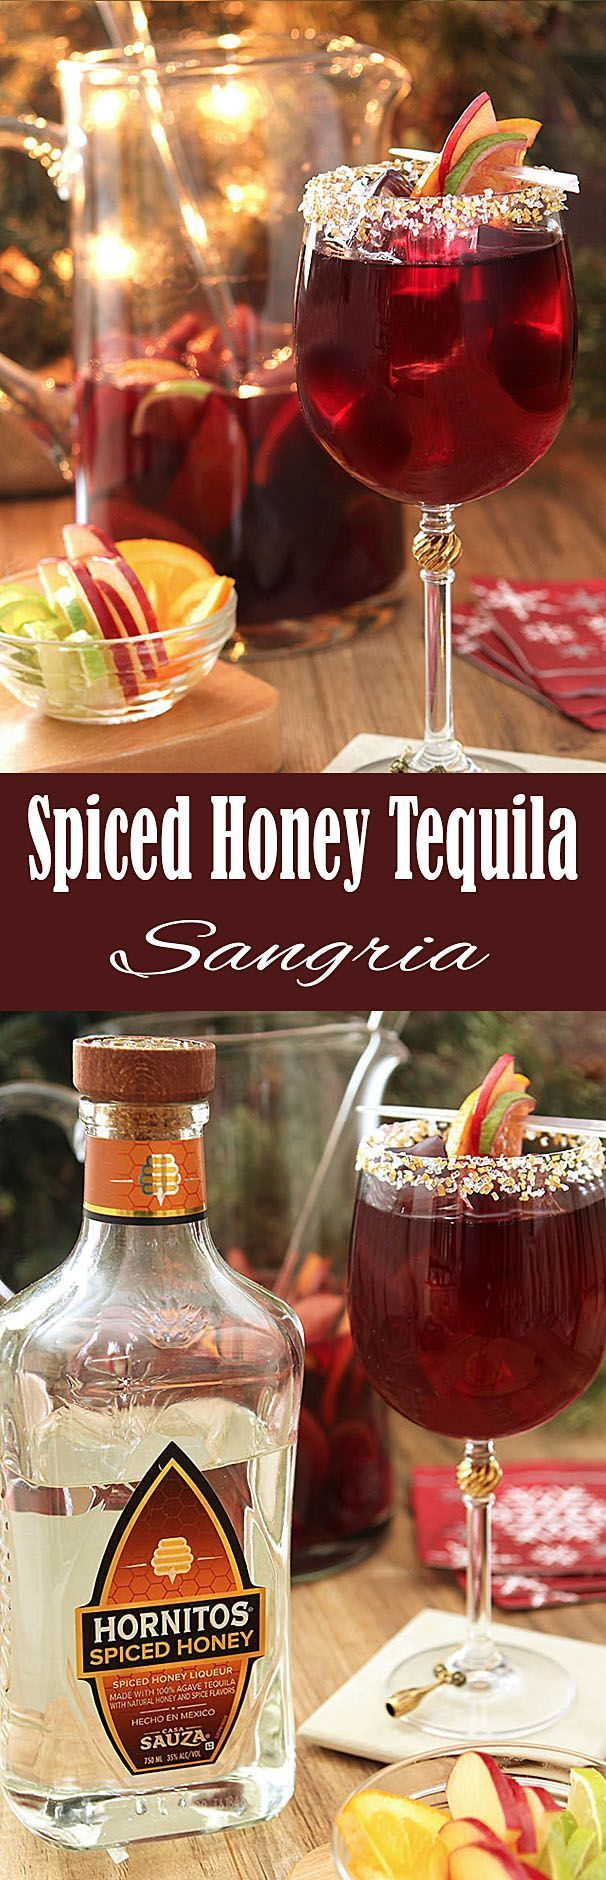 This Spiced Honey Tequila Sangria was a leap of faith and a great one; perfect party fare! #ad #NotJustAnyLife #NotJustAnyTequila